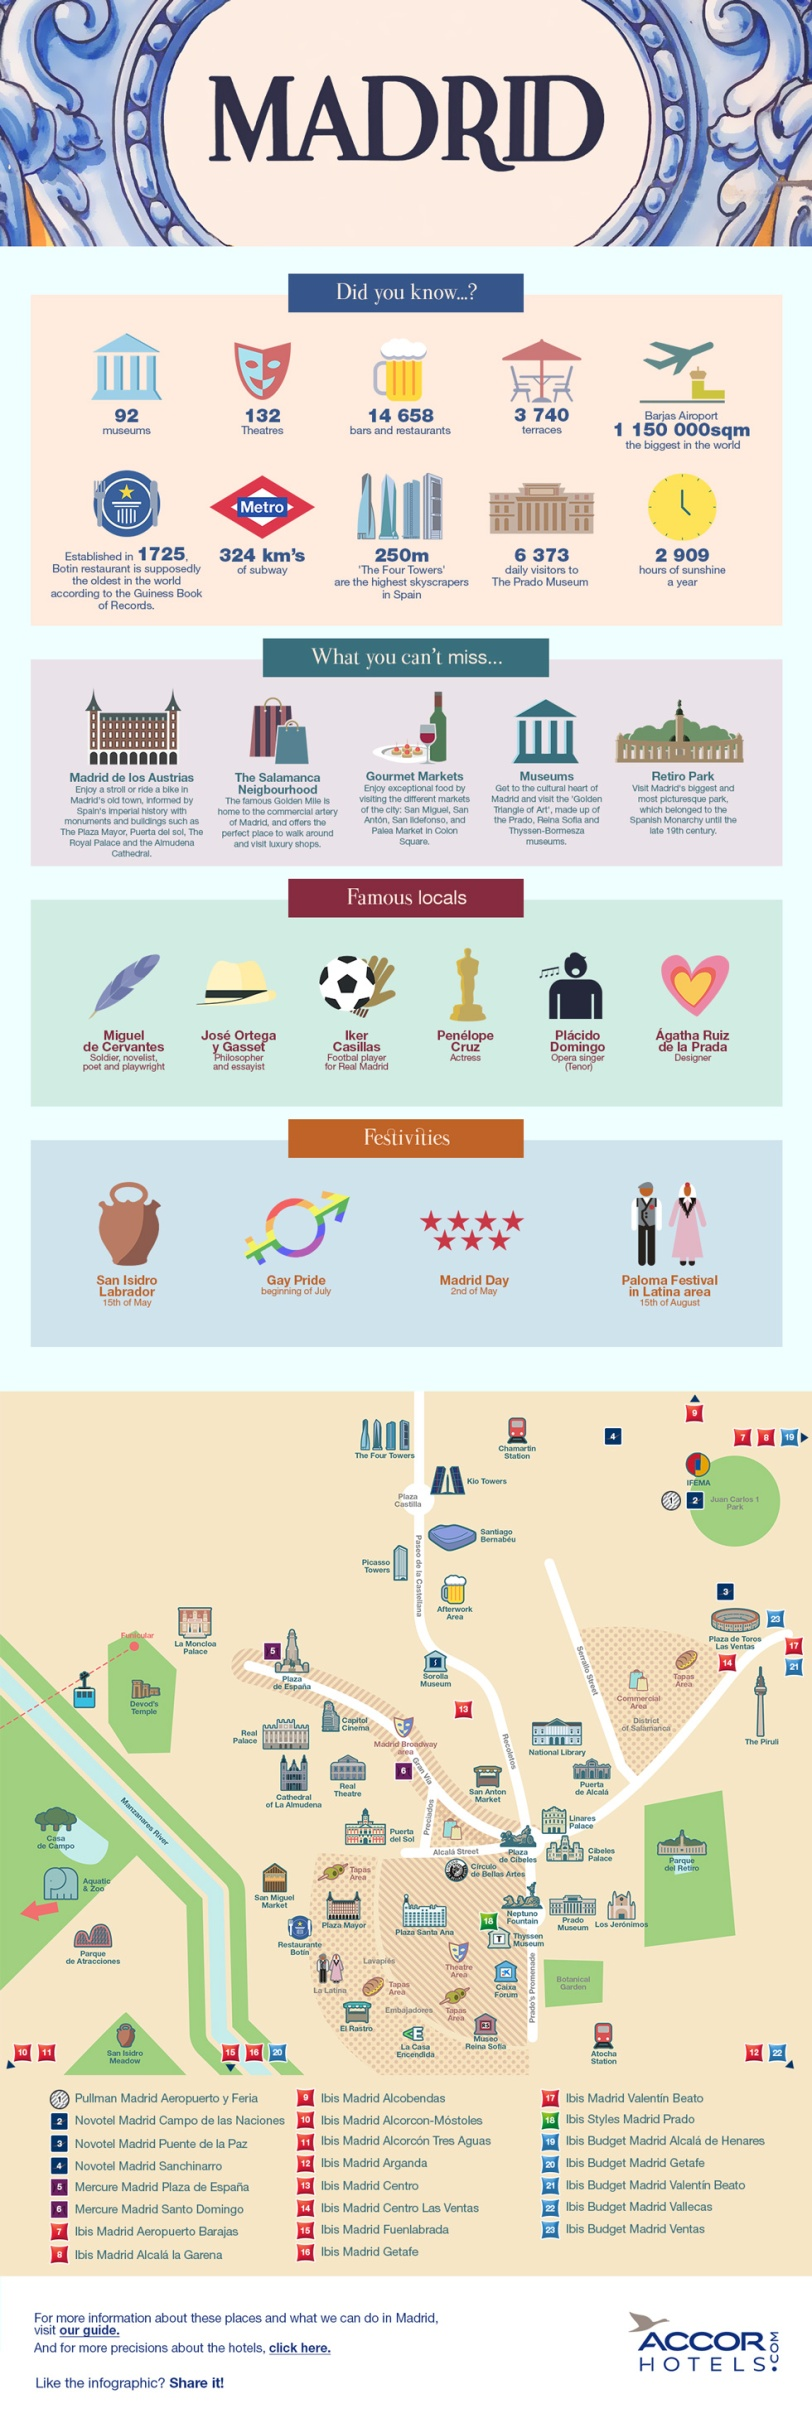 Key Facts About Madrid by AccorHotels.com